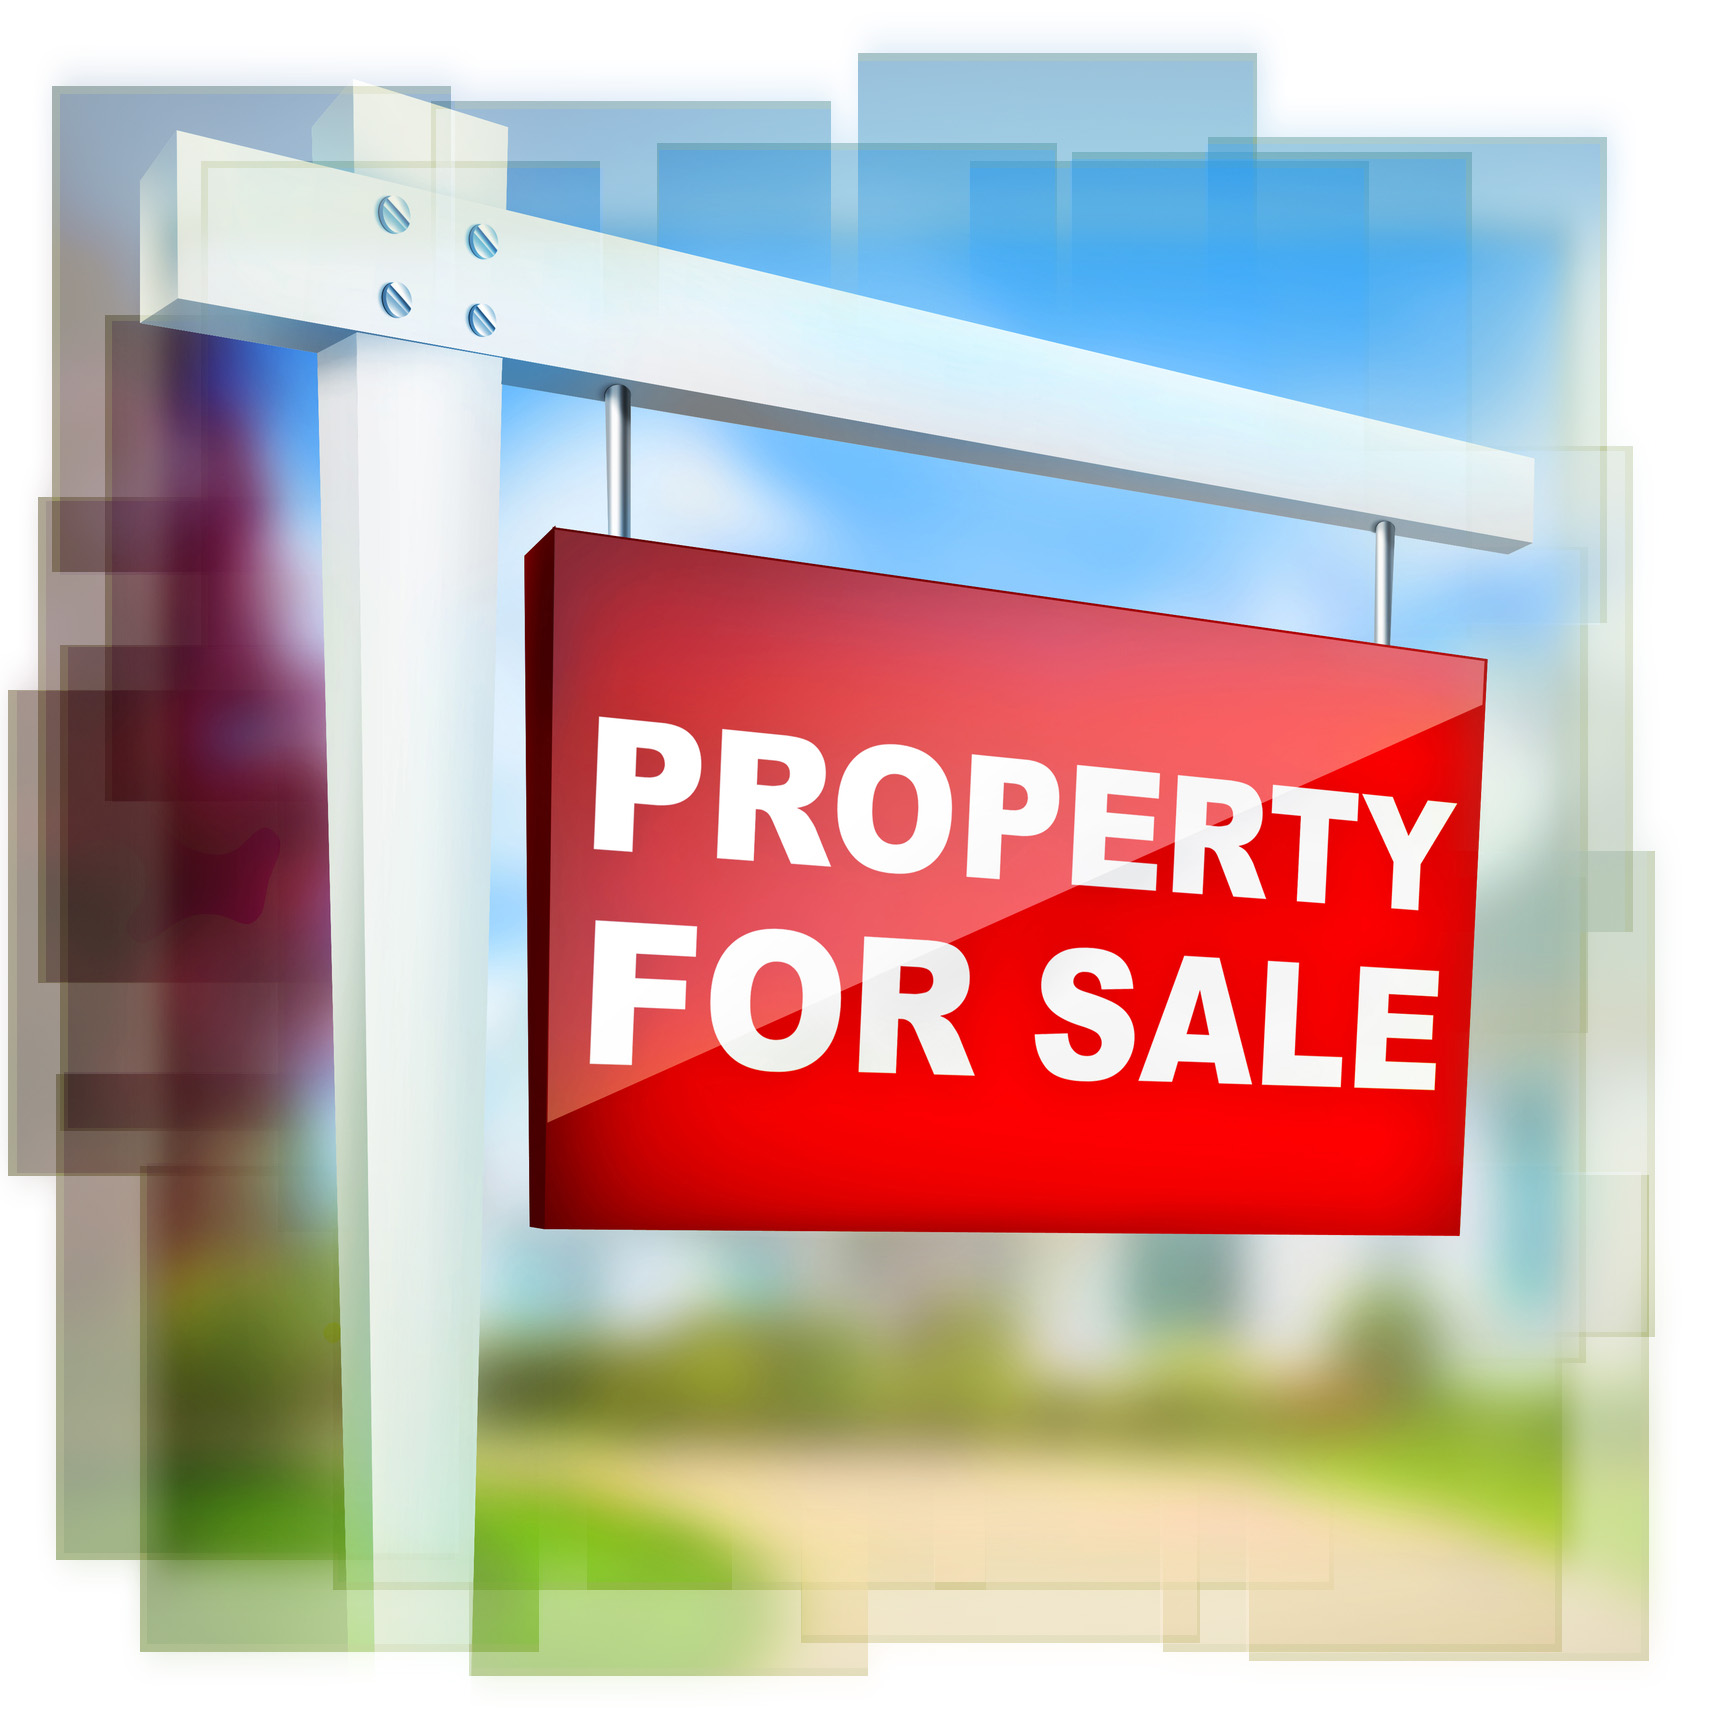 should i invest in wholesale, retail or turnkey properties? — how to